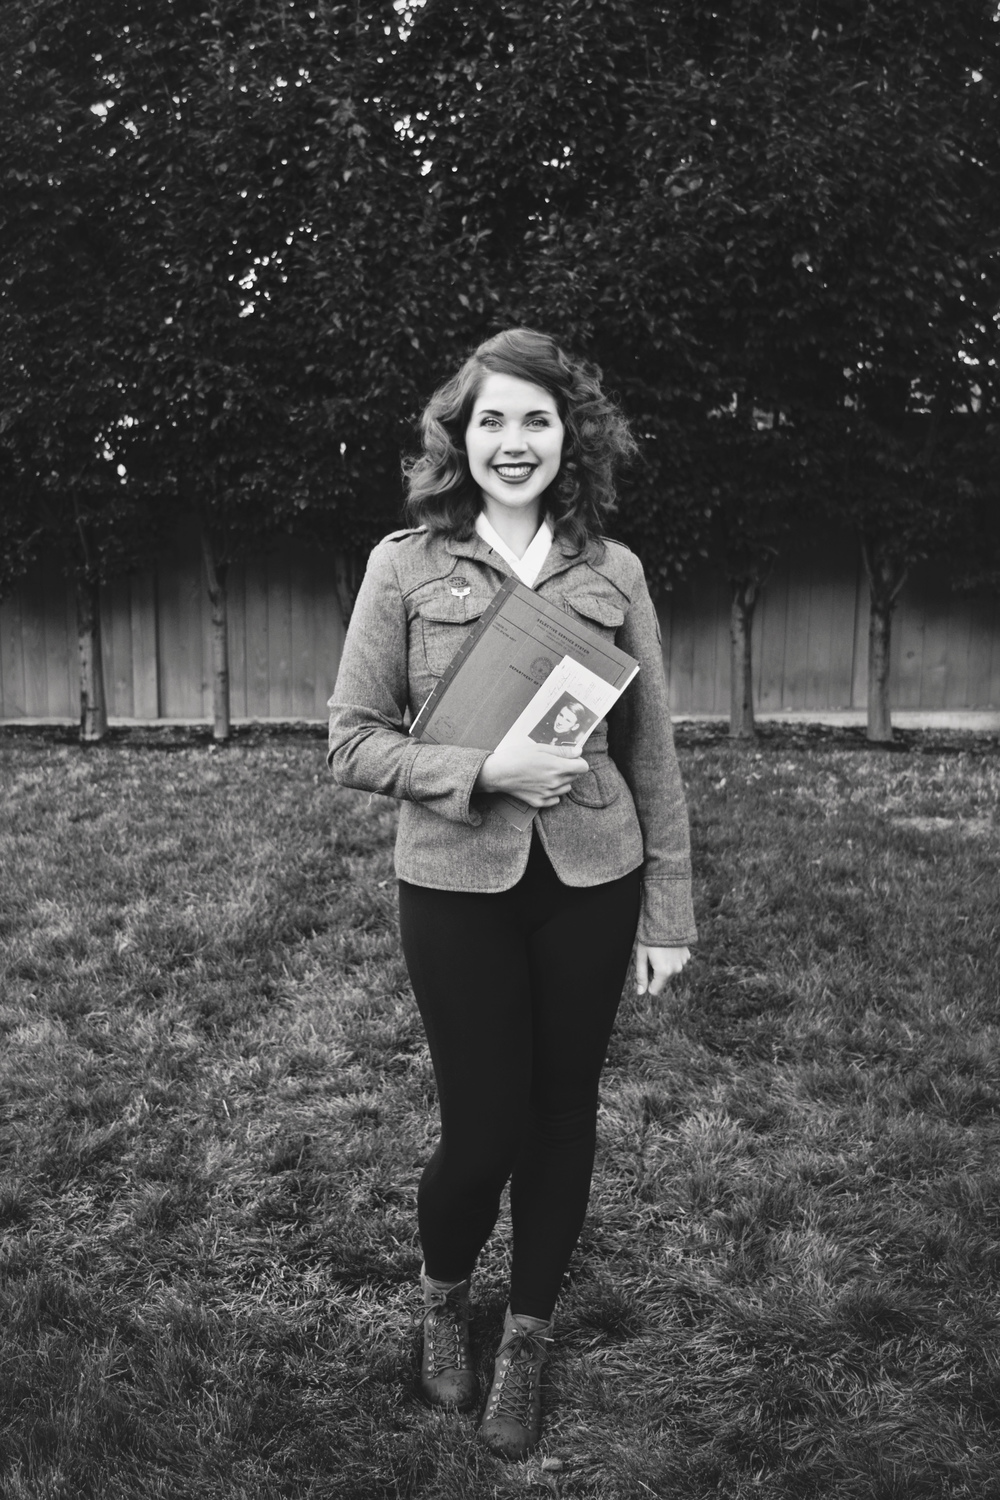 agent carter costume halloween